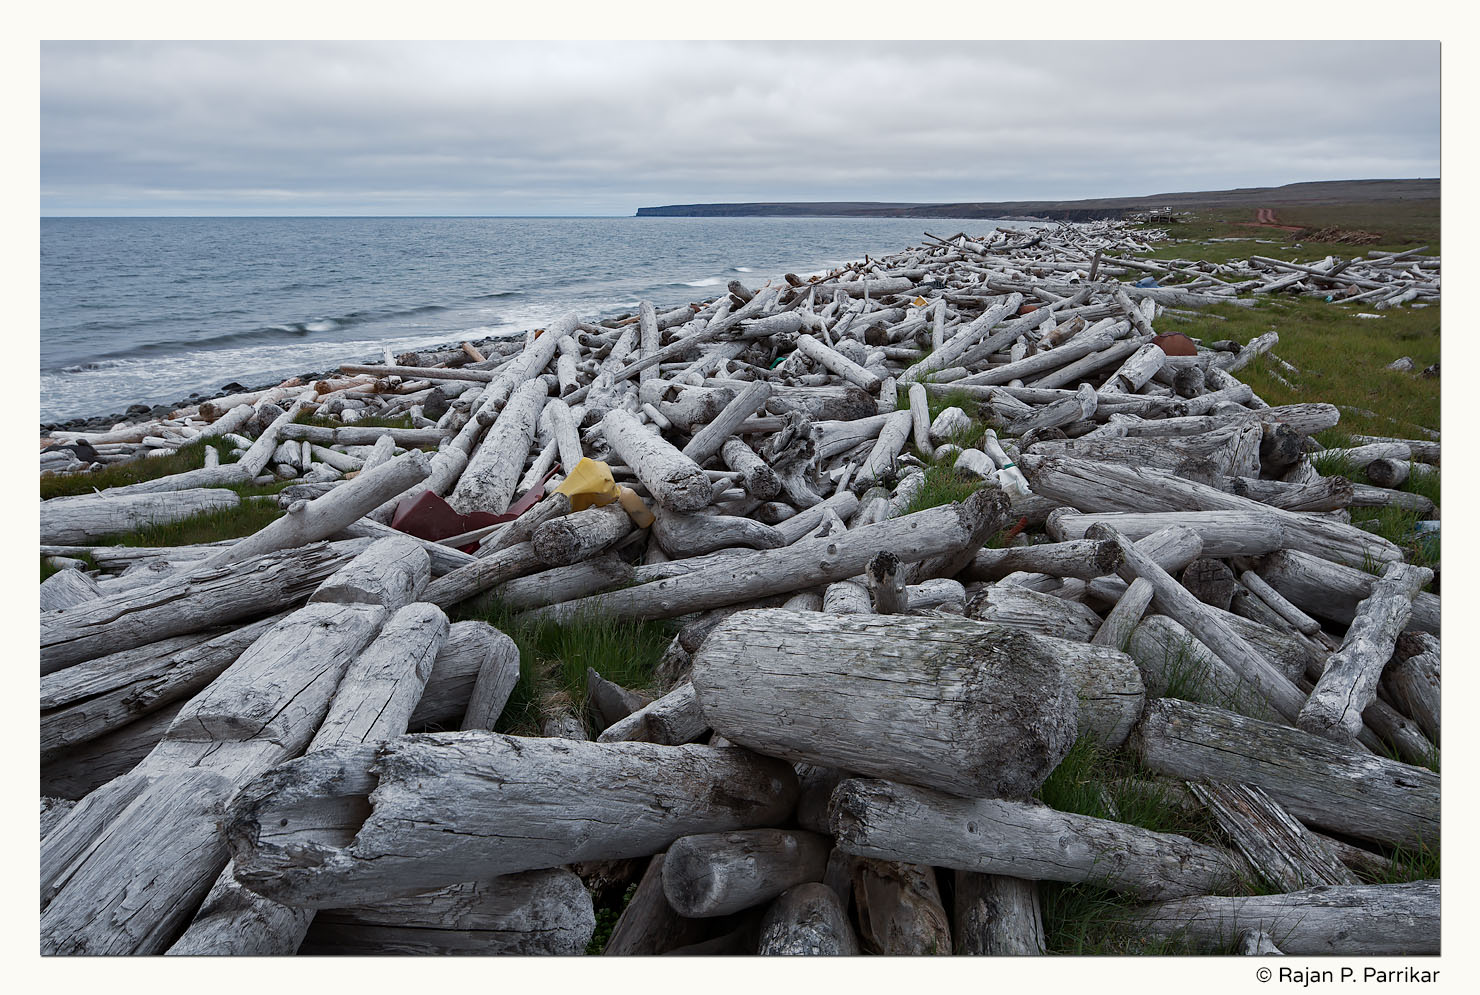 Driftwood in Langanes, Iceland